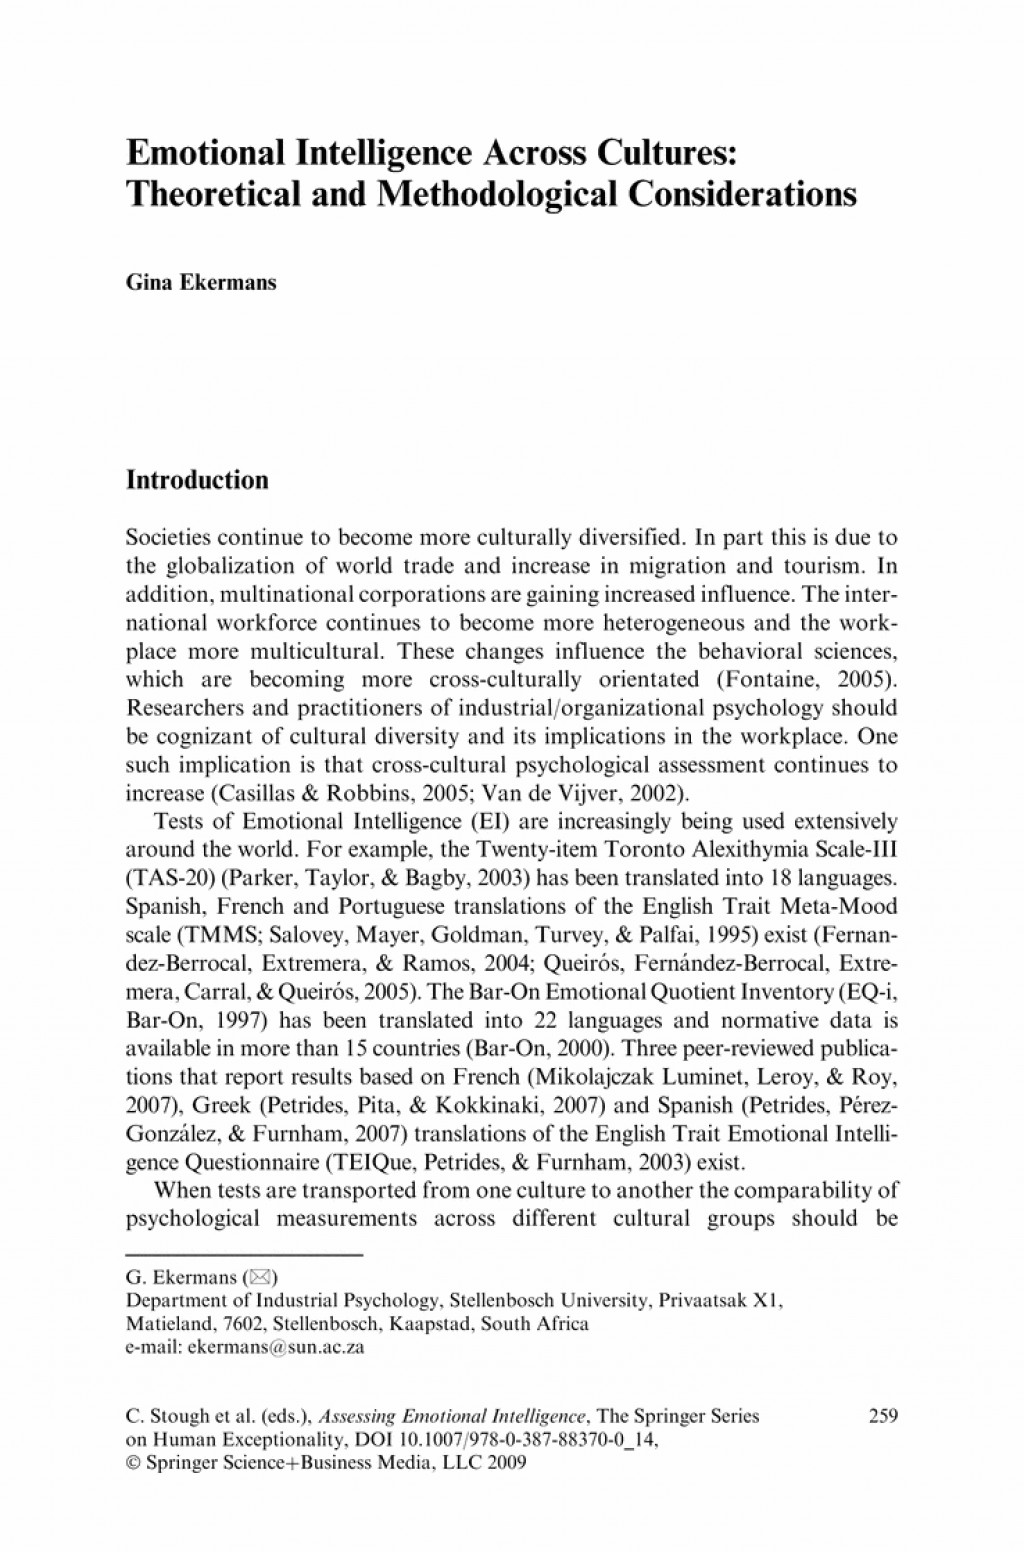 003 Essays Emotional Intelligence Short Essay On In Leadership Nursing Questions Reflective The Workplace Free By Daniel Goleman Fantastic Paper Conclusion Large